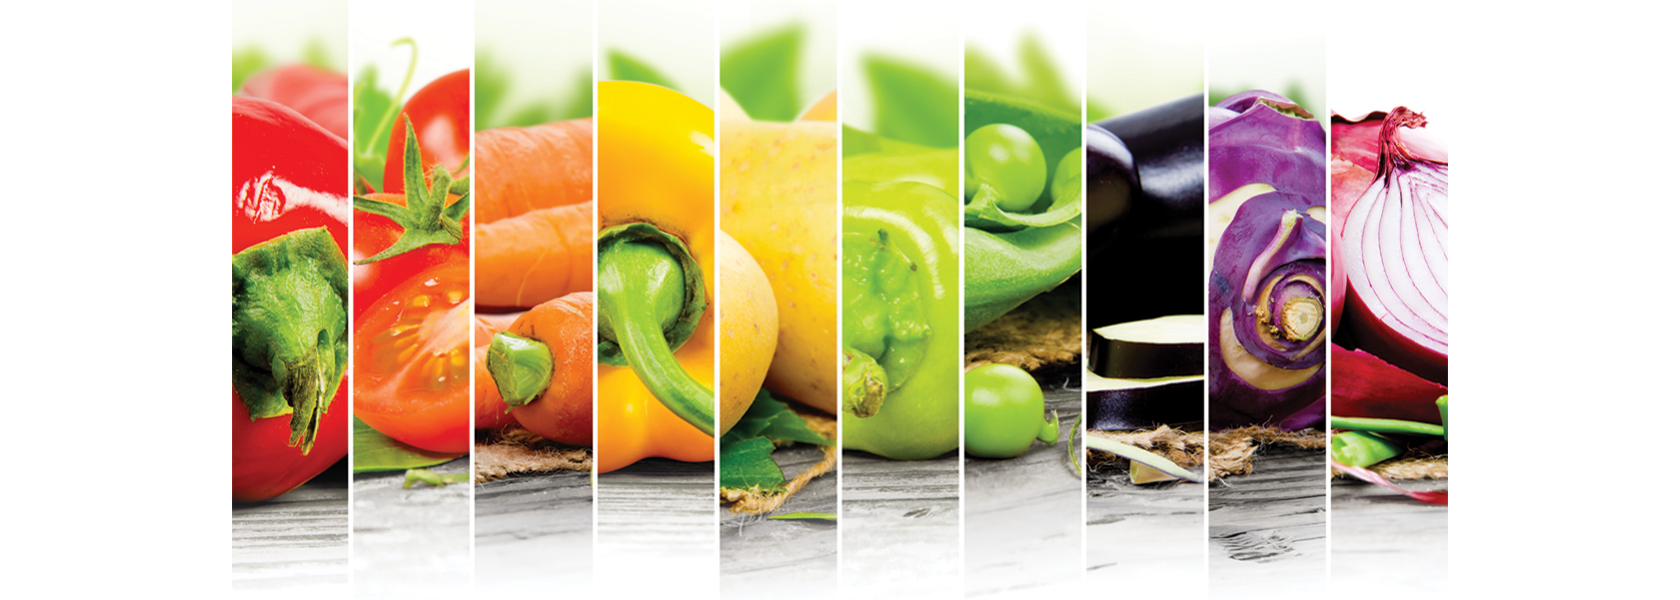 A variety of healthy vegetables to help improve optimum nutrition